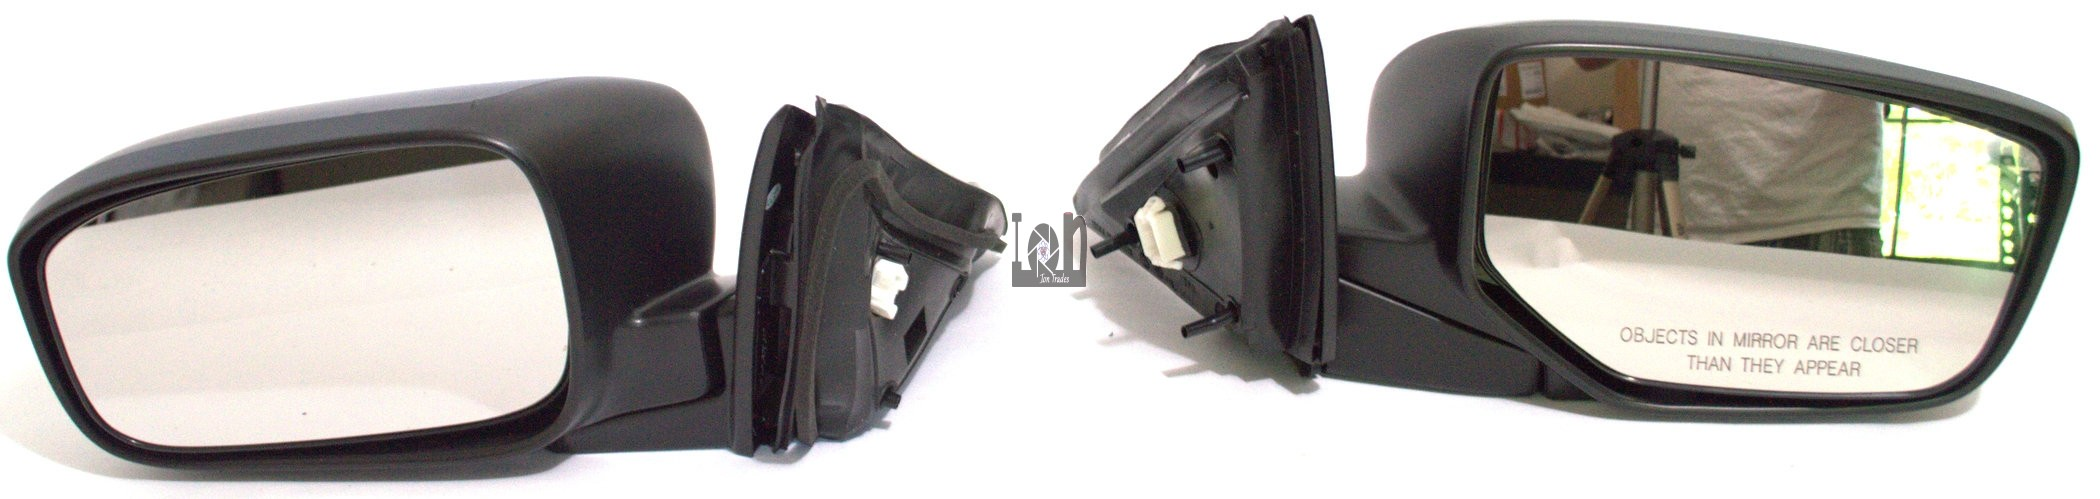 Aftermarket Honda Accord Side Mirrors 2008 2009 2010 2011 Heated